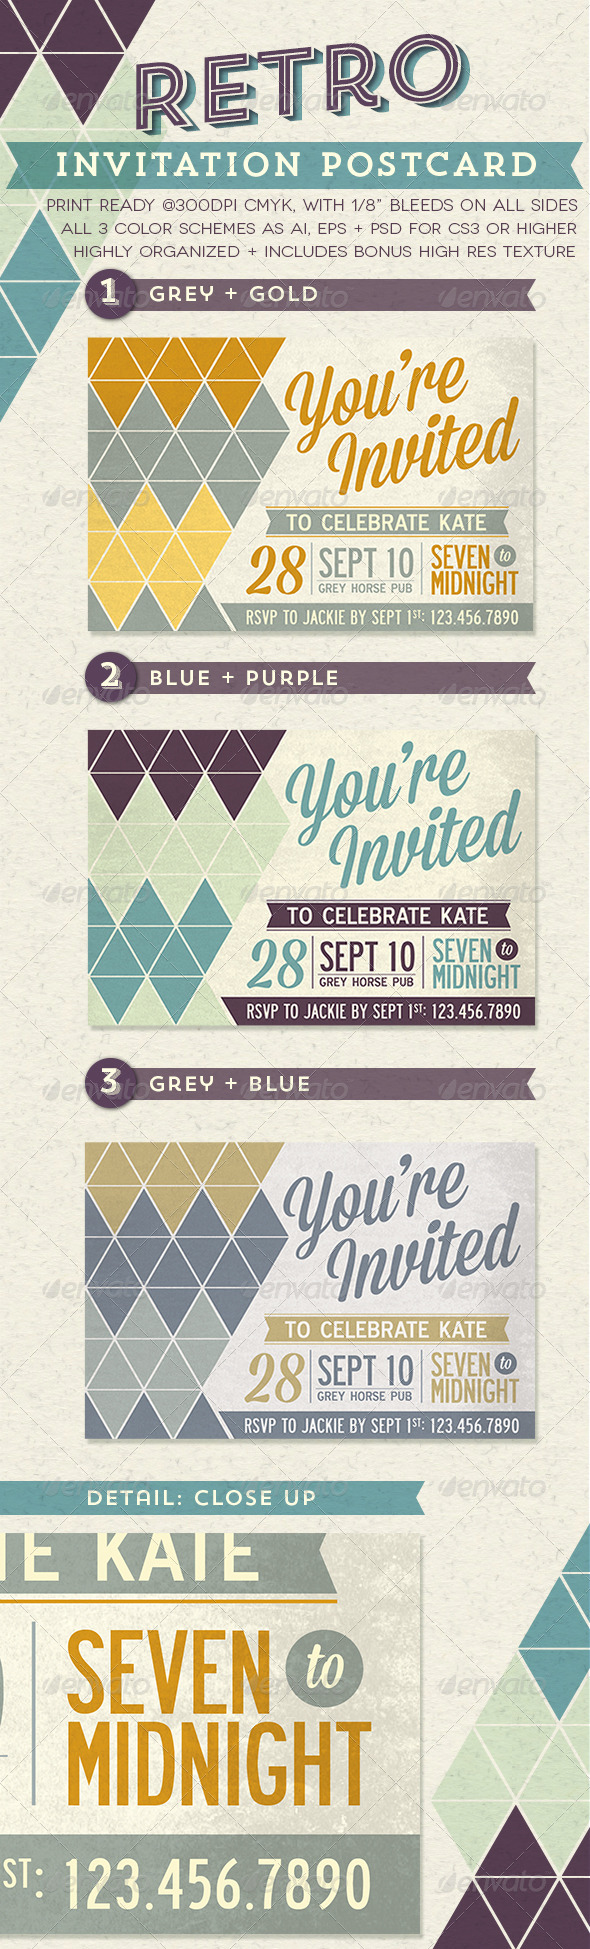 GraphicRiver Retro Invitation Postcard 5370054